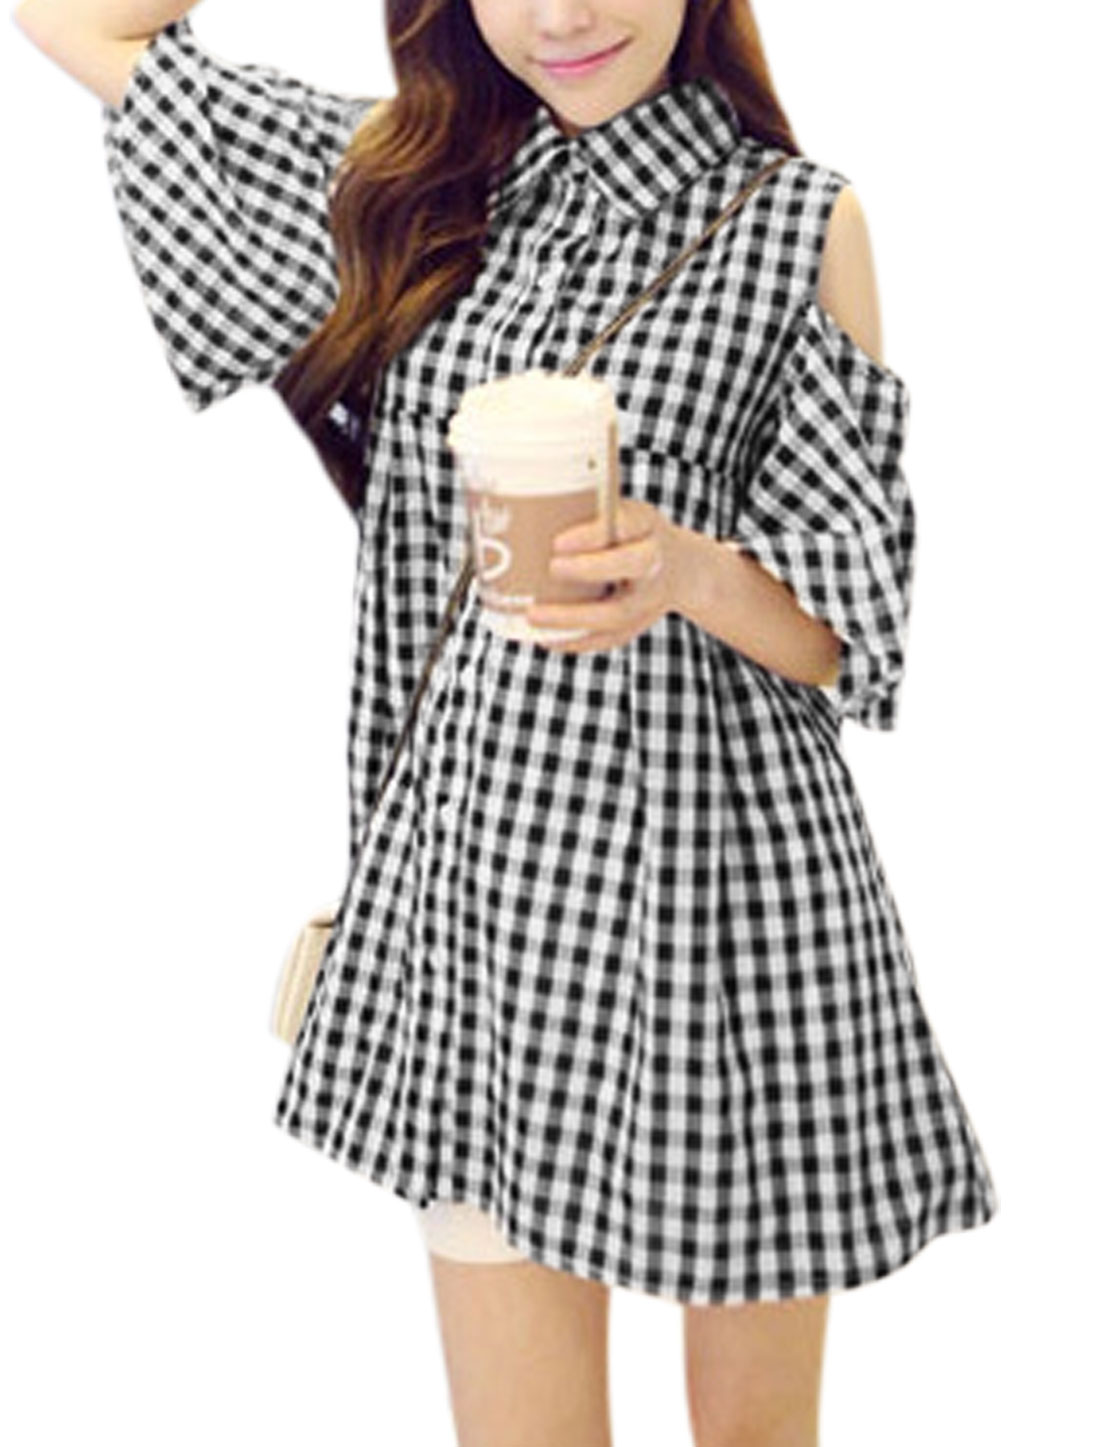 Women Point Collar Half Bell Sleeve Plaids Sweet Tunic Blouse Black White S